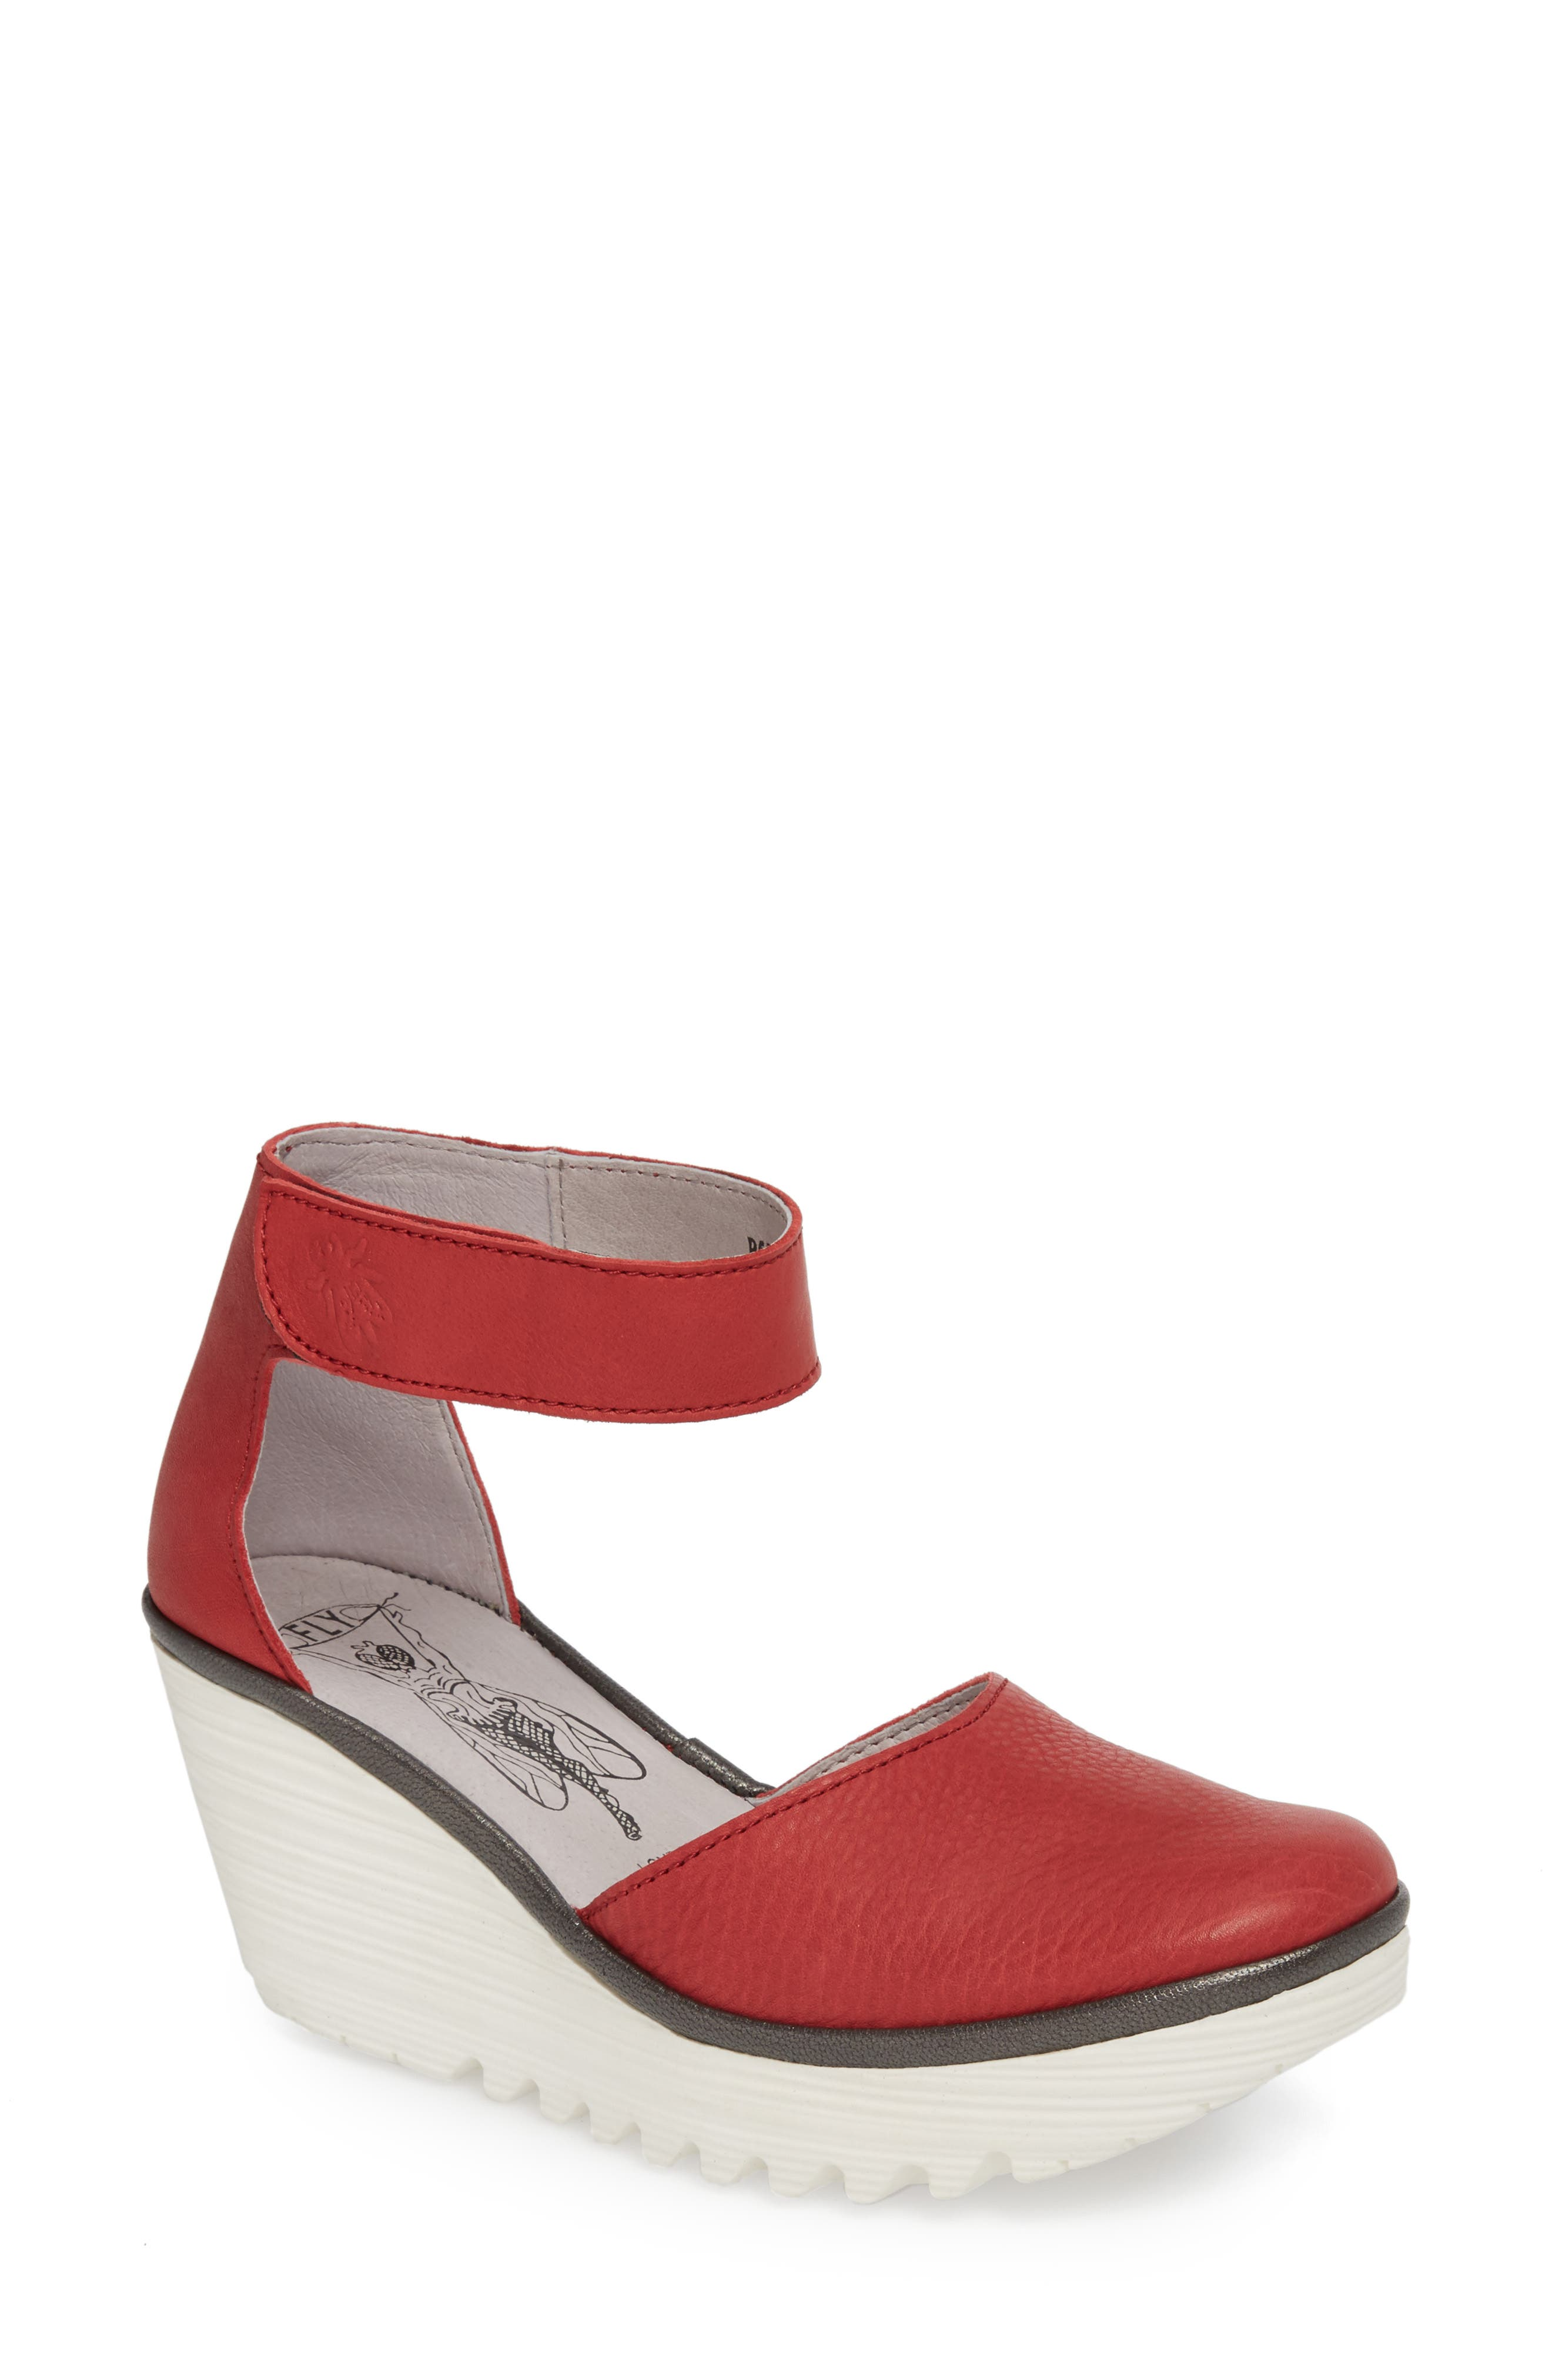 Yand Wedge Pump,                             Main thumbnail 1, color,                             RED/ OFF WHITE BRITO LEATHER